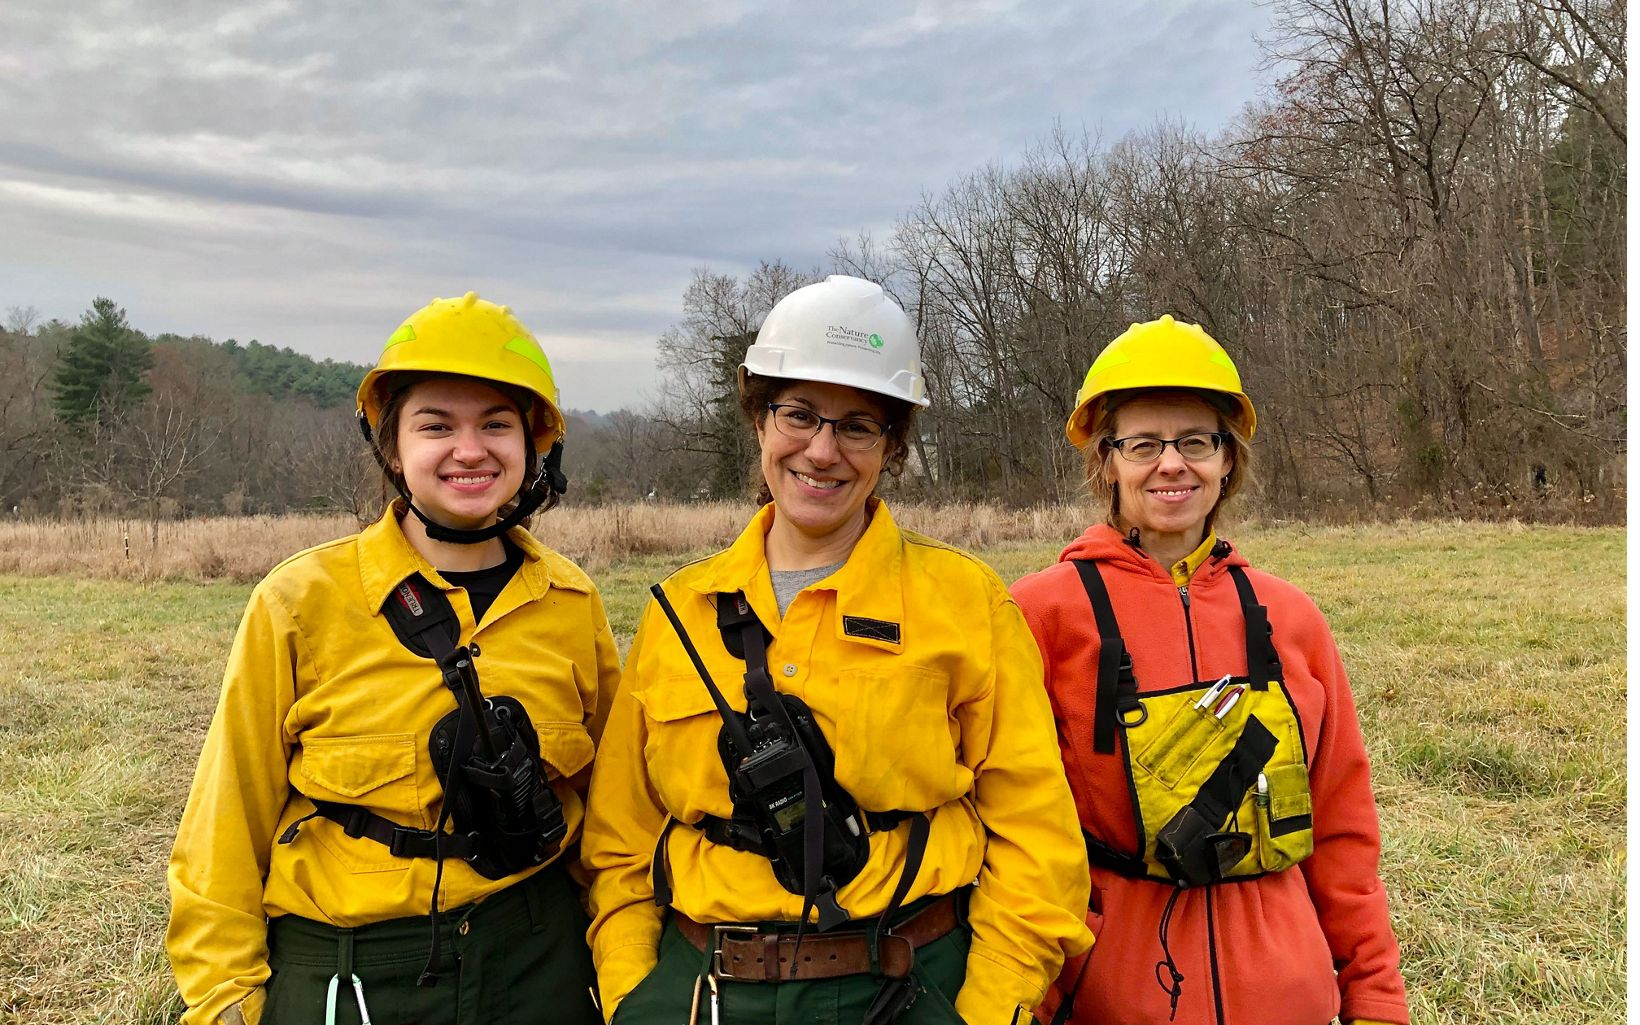 Three women wearing yellow fire gear stand together.